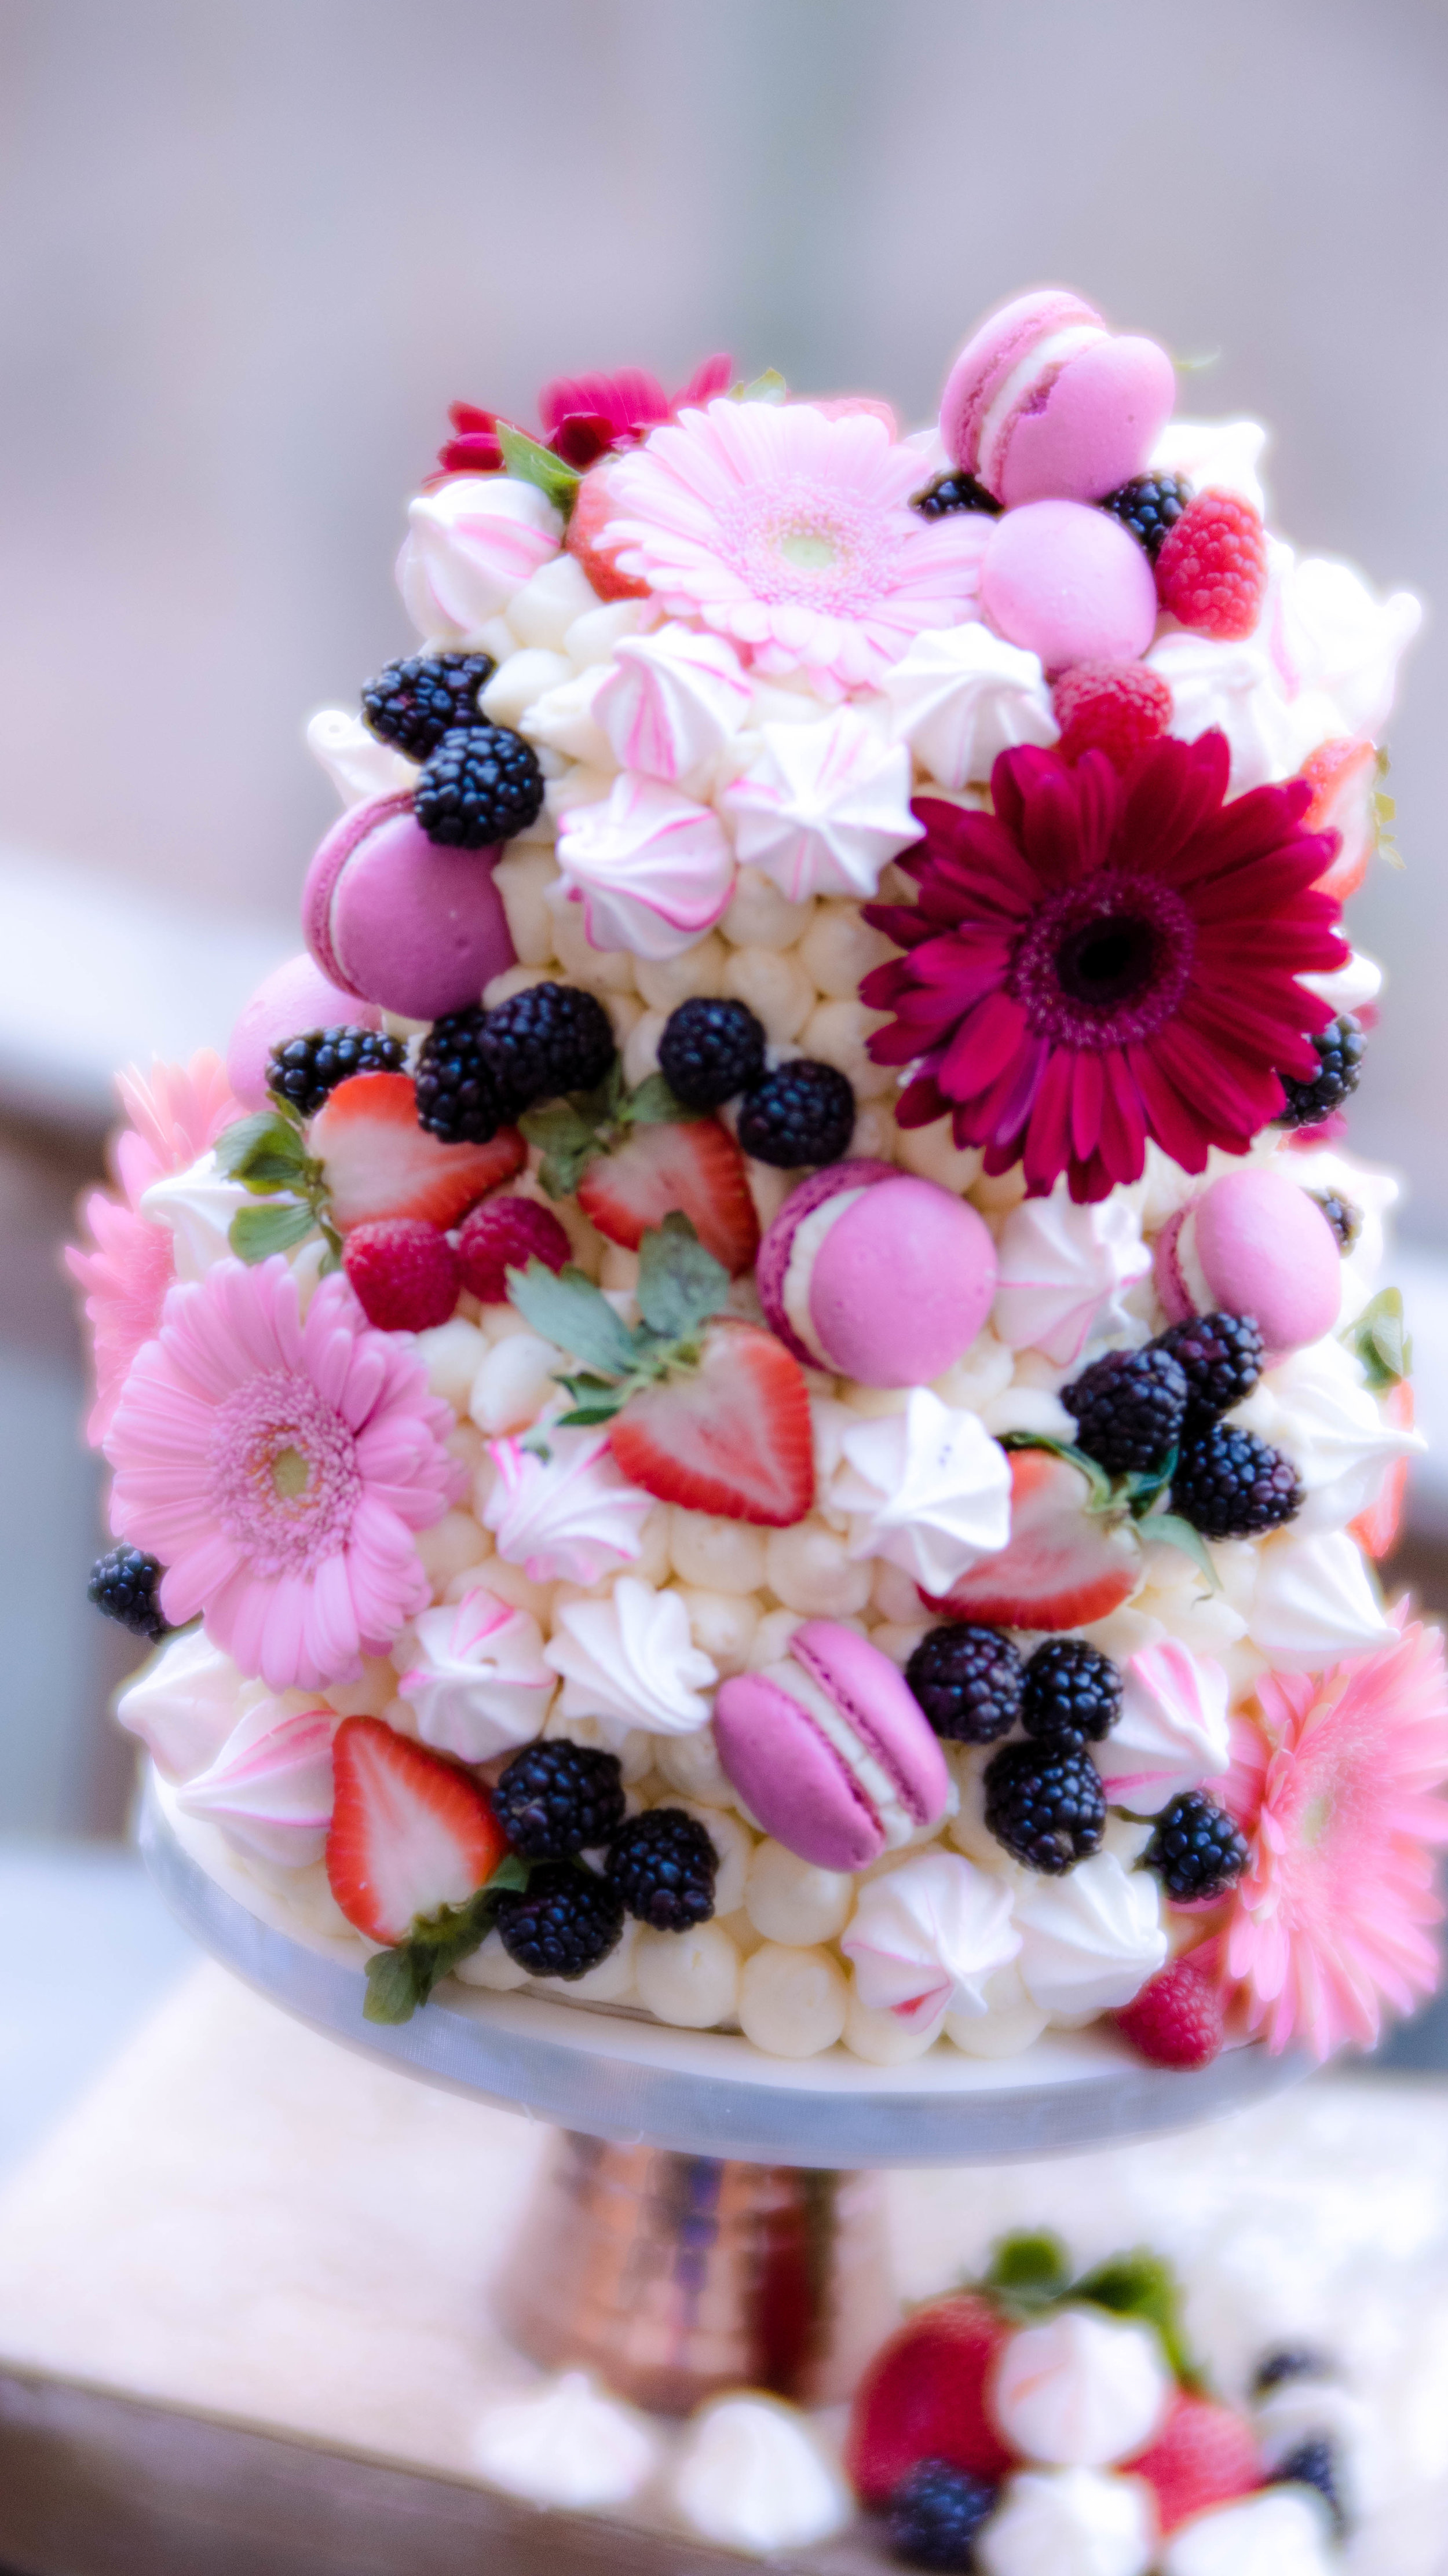 I used the kisses to decorate this buttercream cake. Don't they look pretty? -